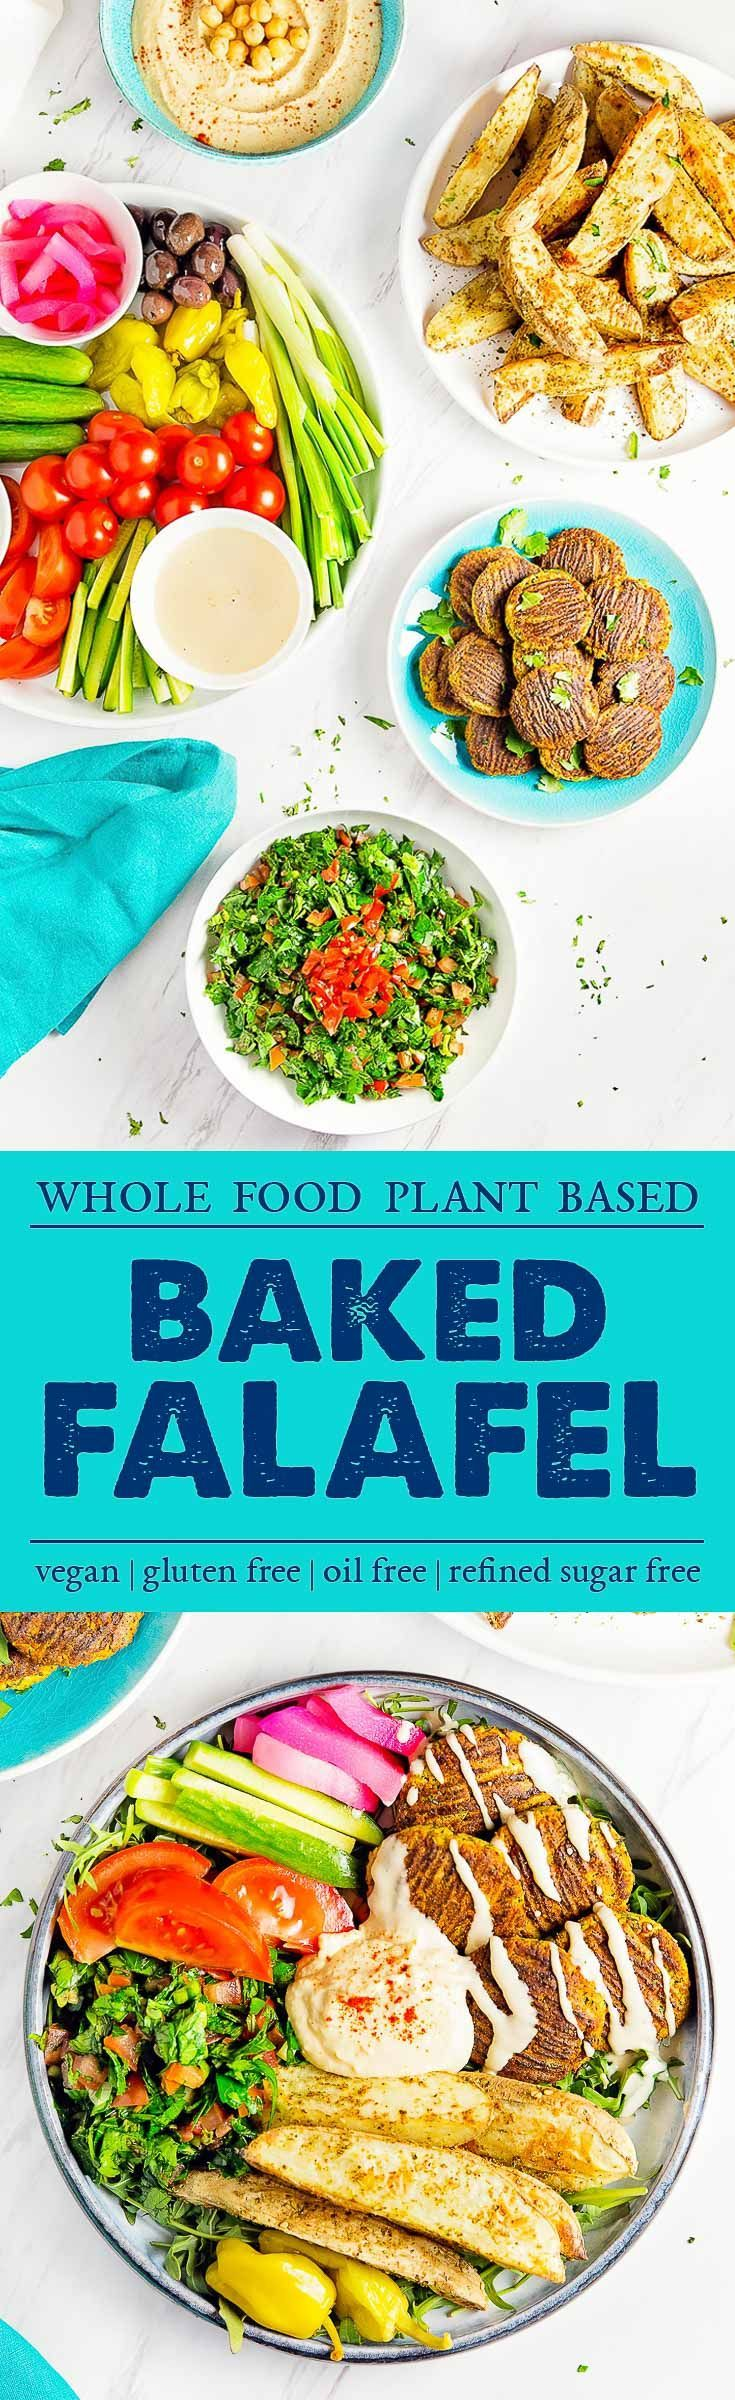 HEALTHY and DELICIOUS Baked Falafel! So easy and packed with tons of yummy flavor and wholesome ingredients! #vegan #glutenfree #oilfree #falafel #plantbased #refinedsugarfree #healthy #healthyvegan #monkeyandmekitchenadventures #recipe